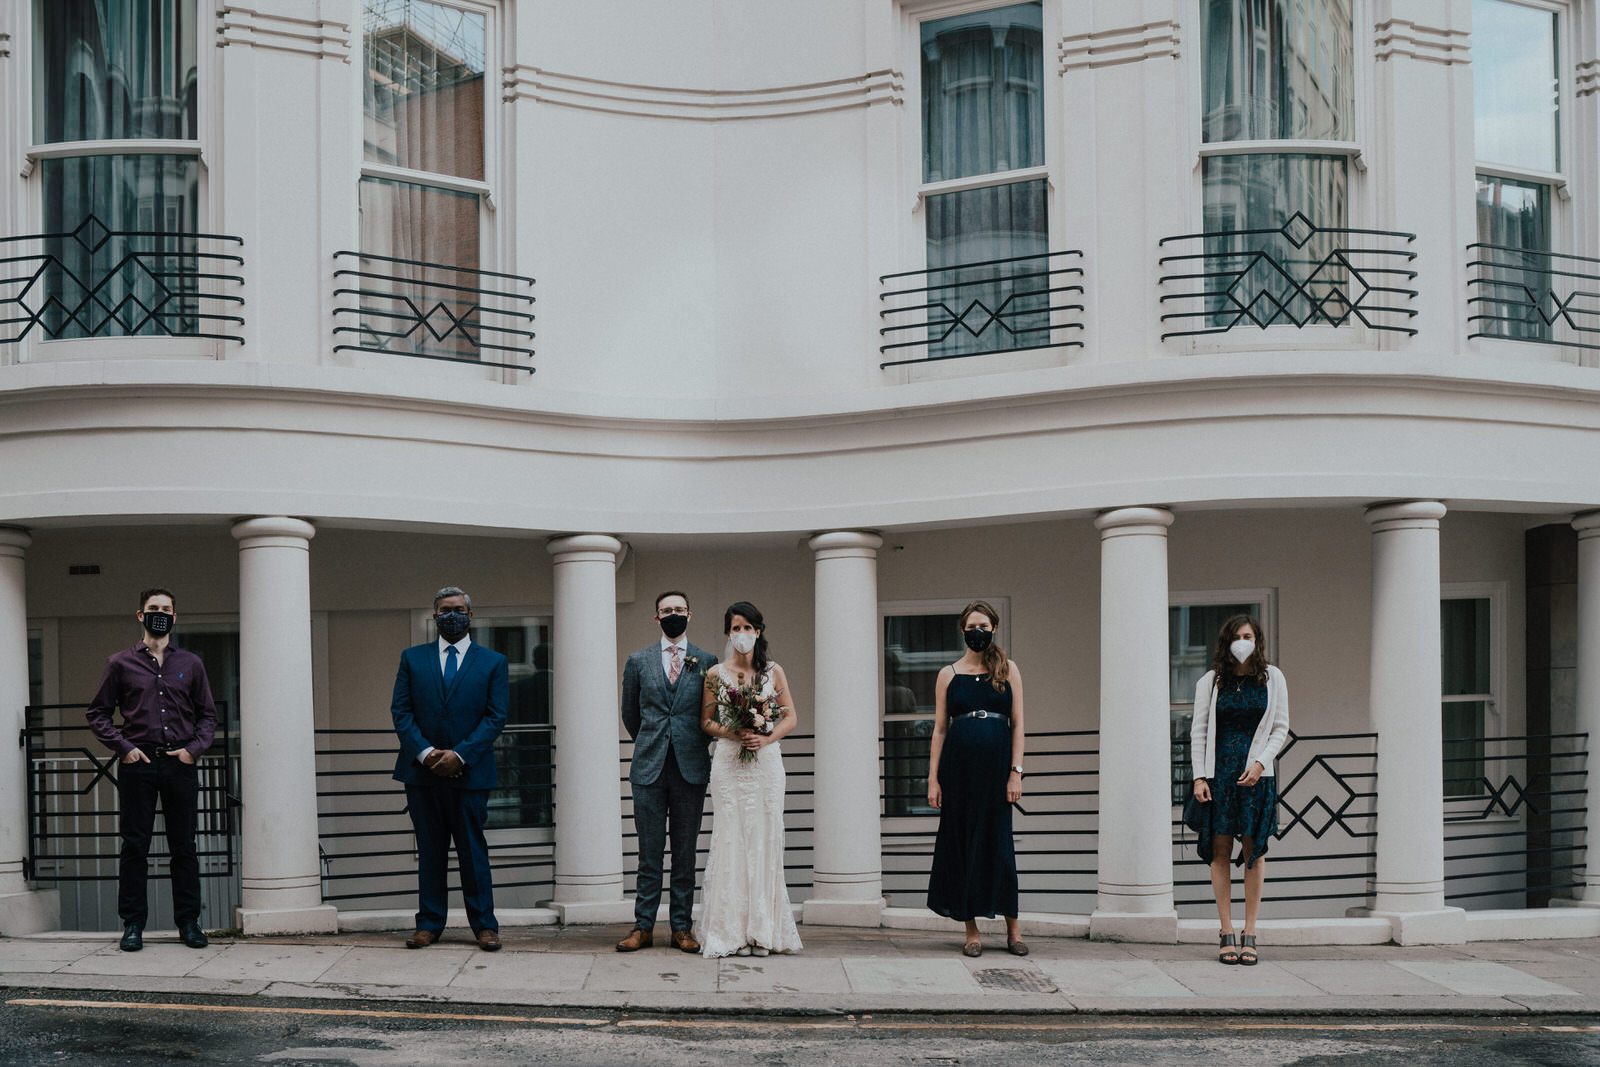 Covid-19: Introducing flexible wedding photography package - The Yew Tree